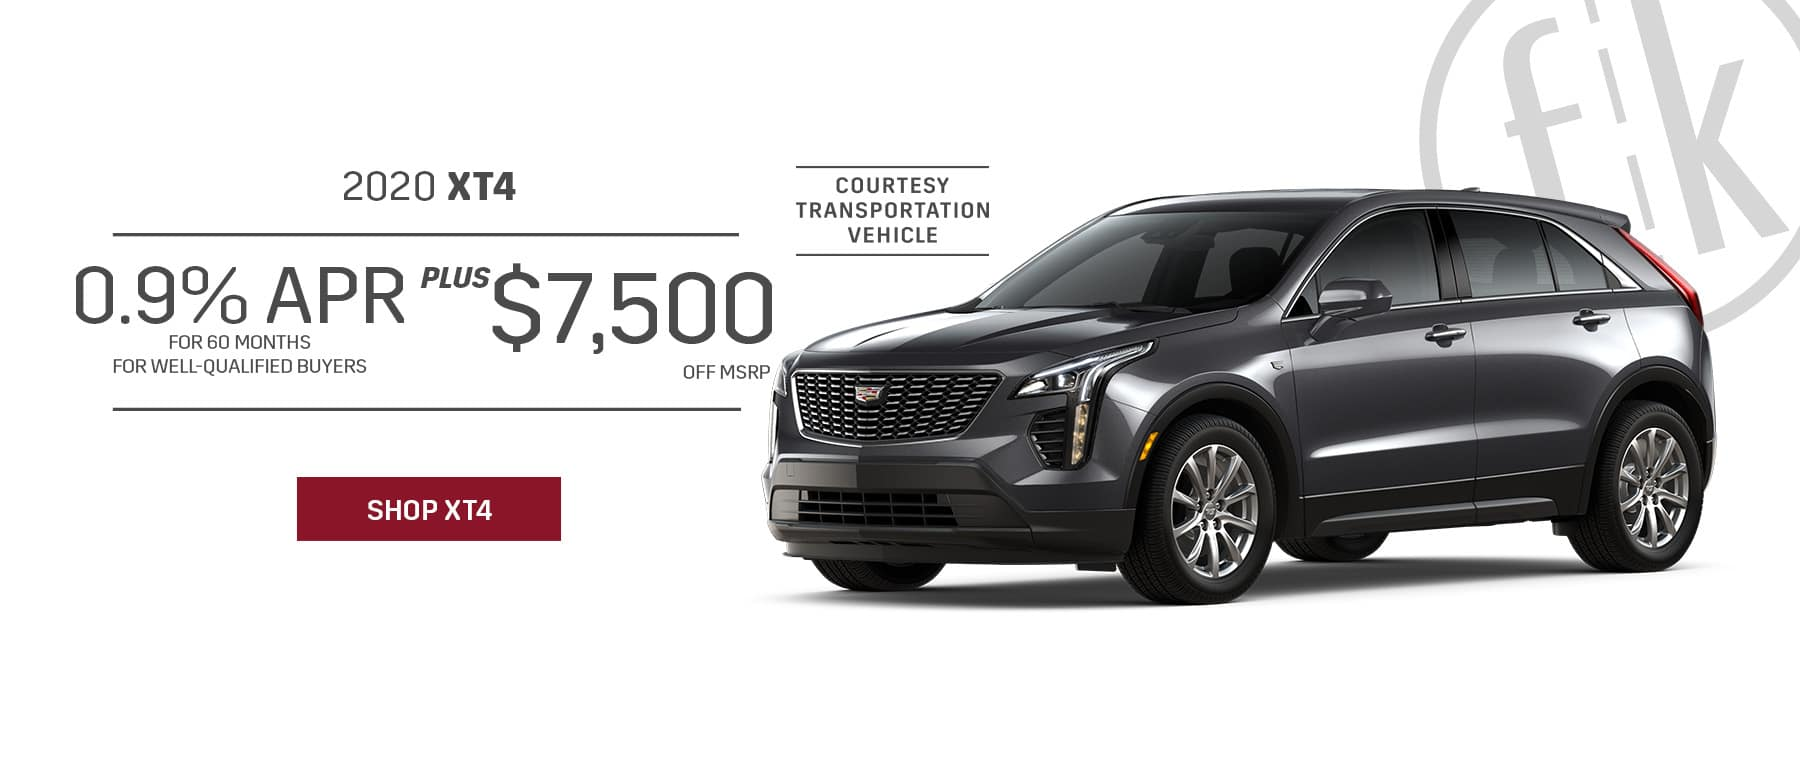 0.9% for 60 mos. PLUS $7,500 Off 2020 XT4 Demo